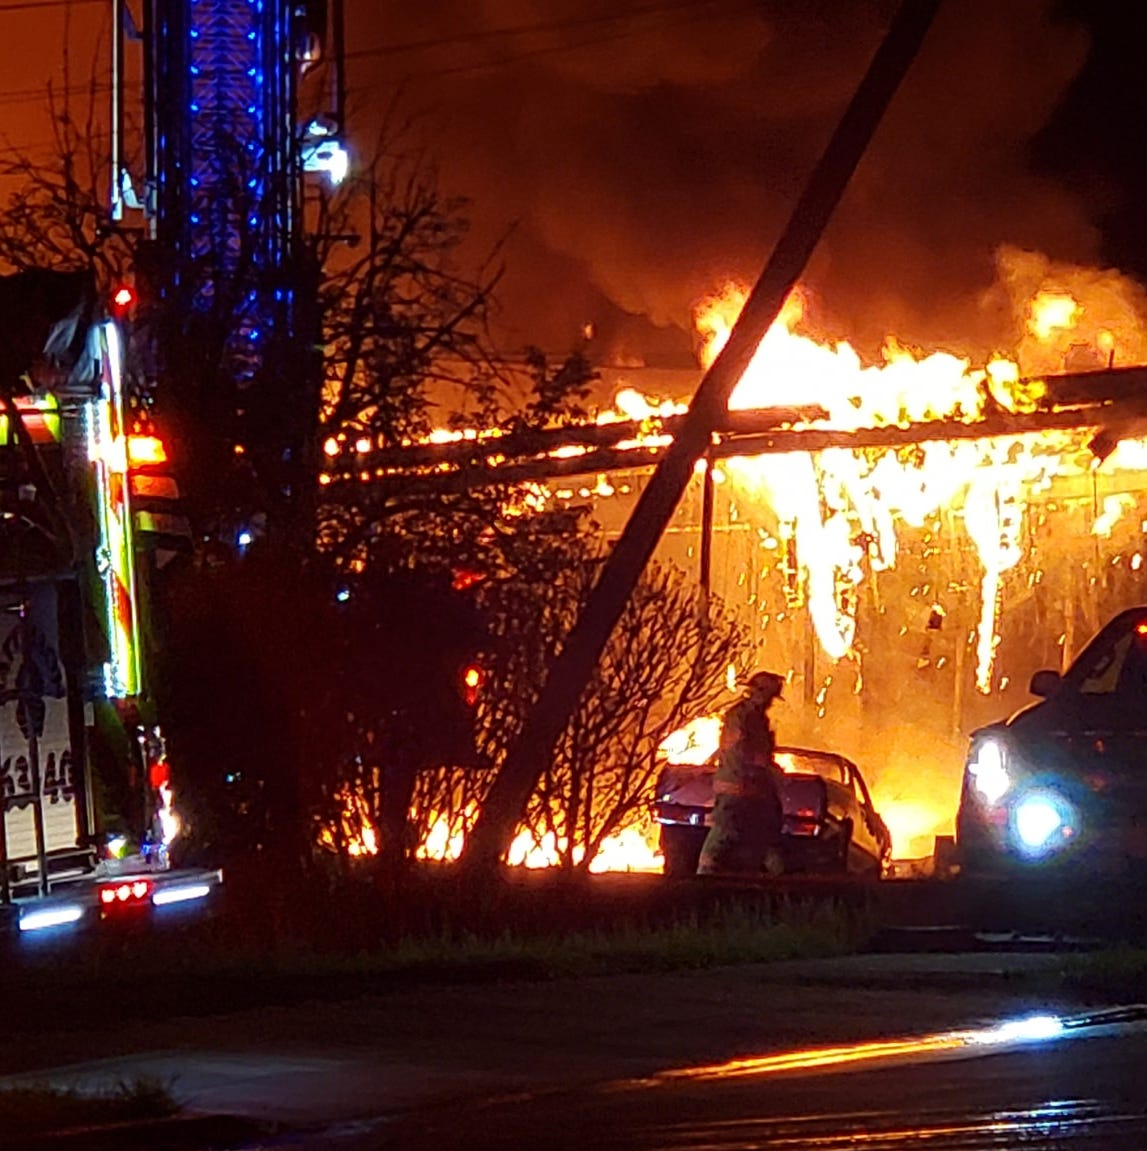 'A total loss': Fire destroys car dealership, HBO series film site in Ulster